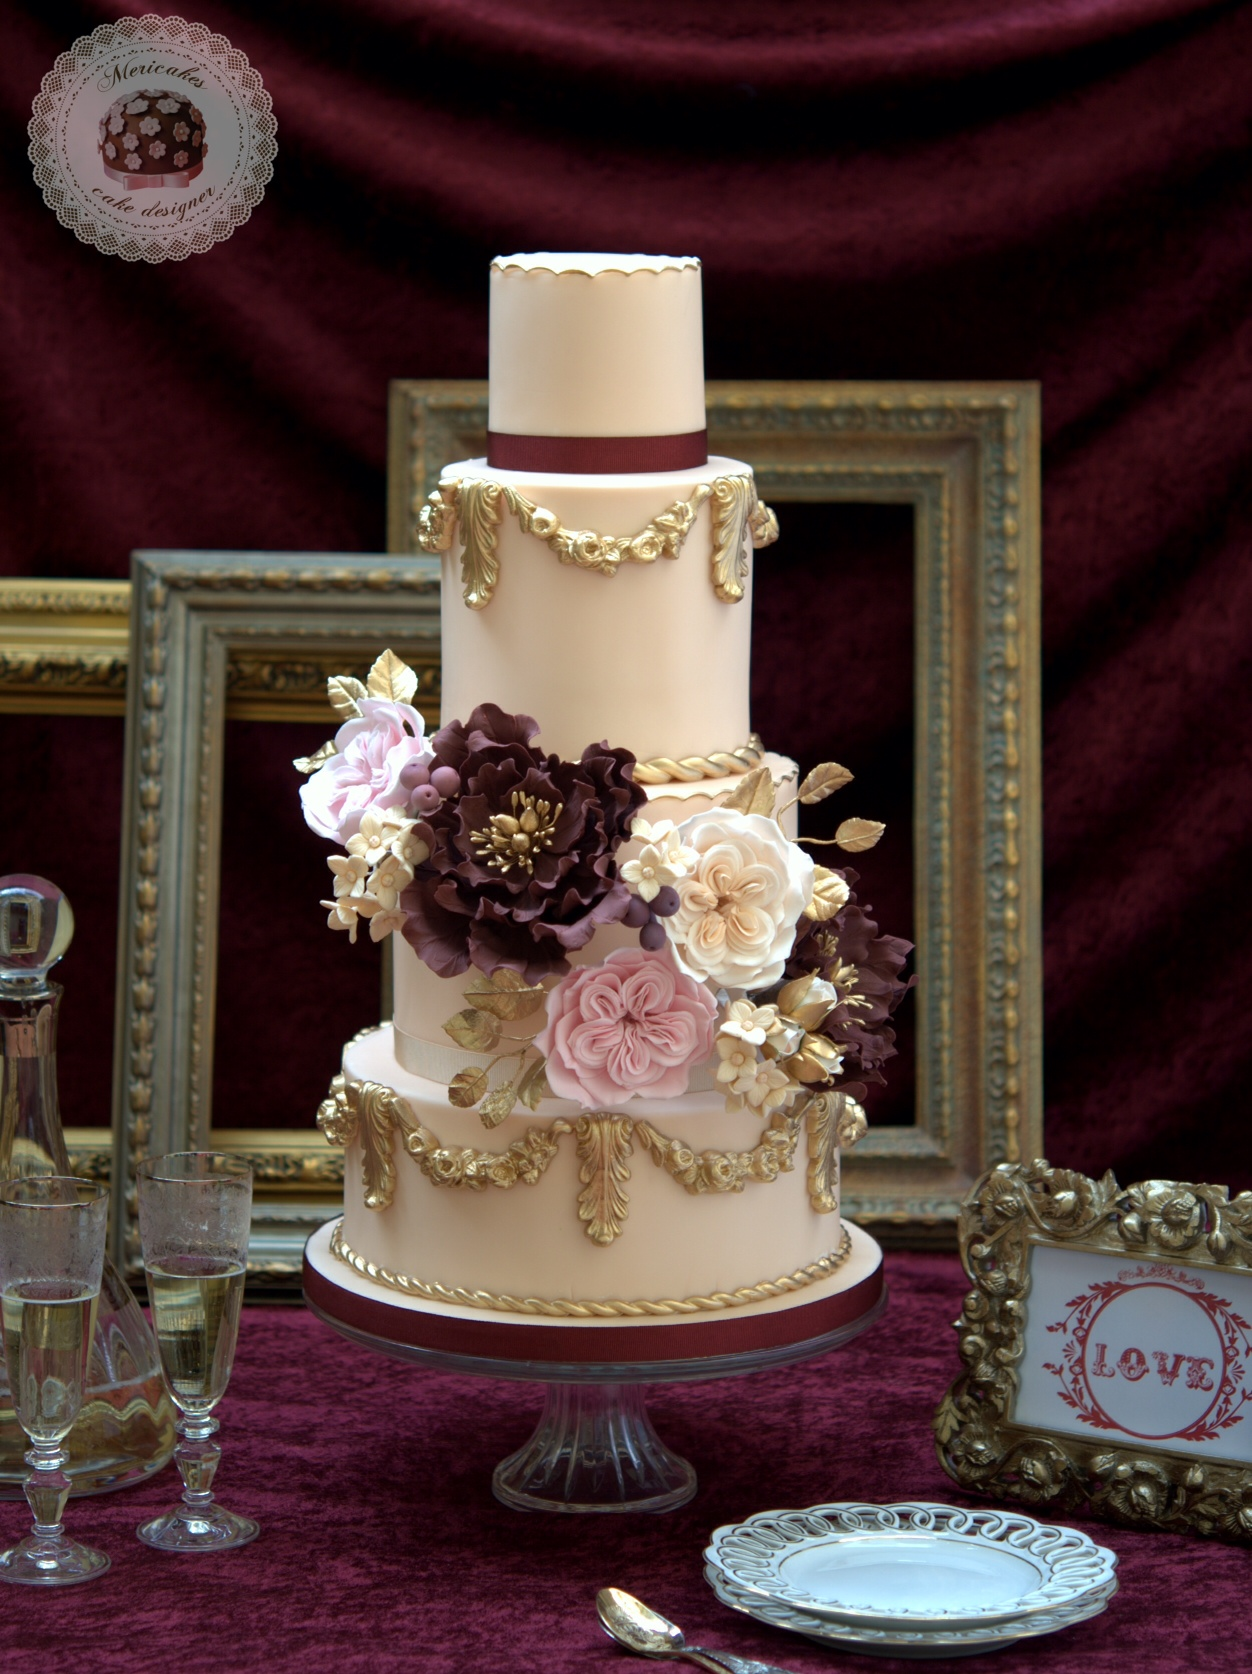 baroque-love-wedding-cake-mericakes-4